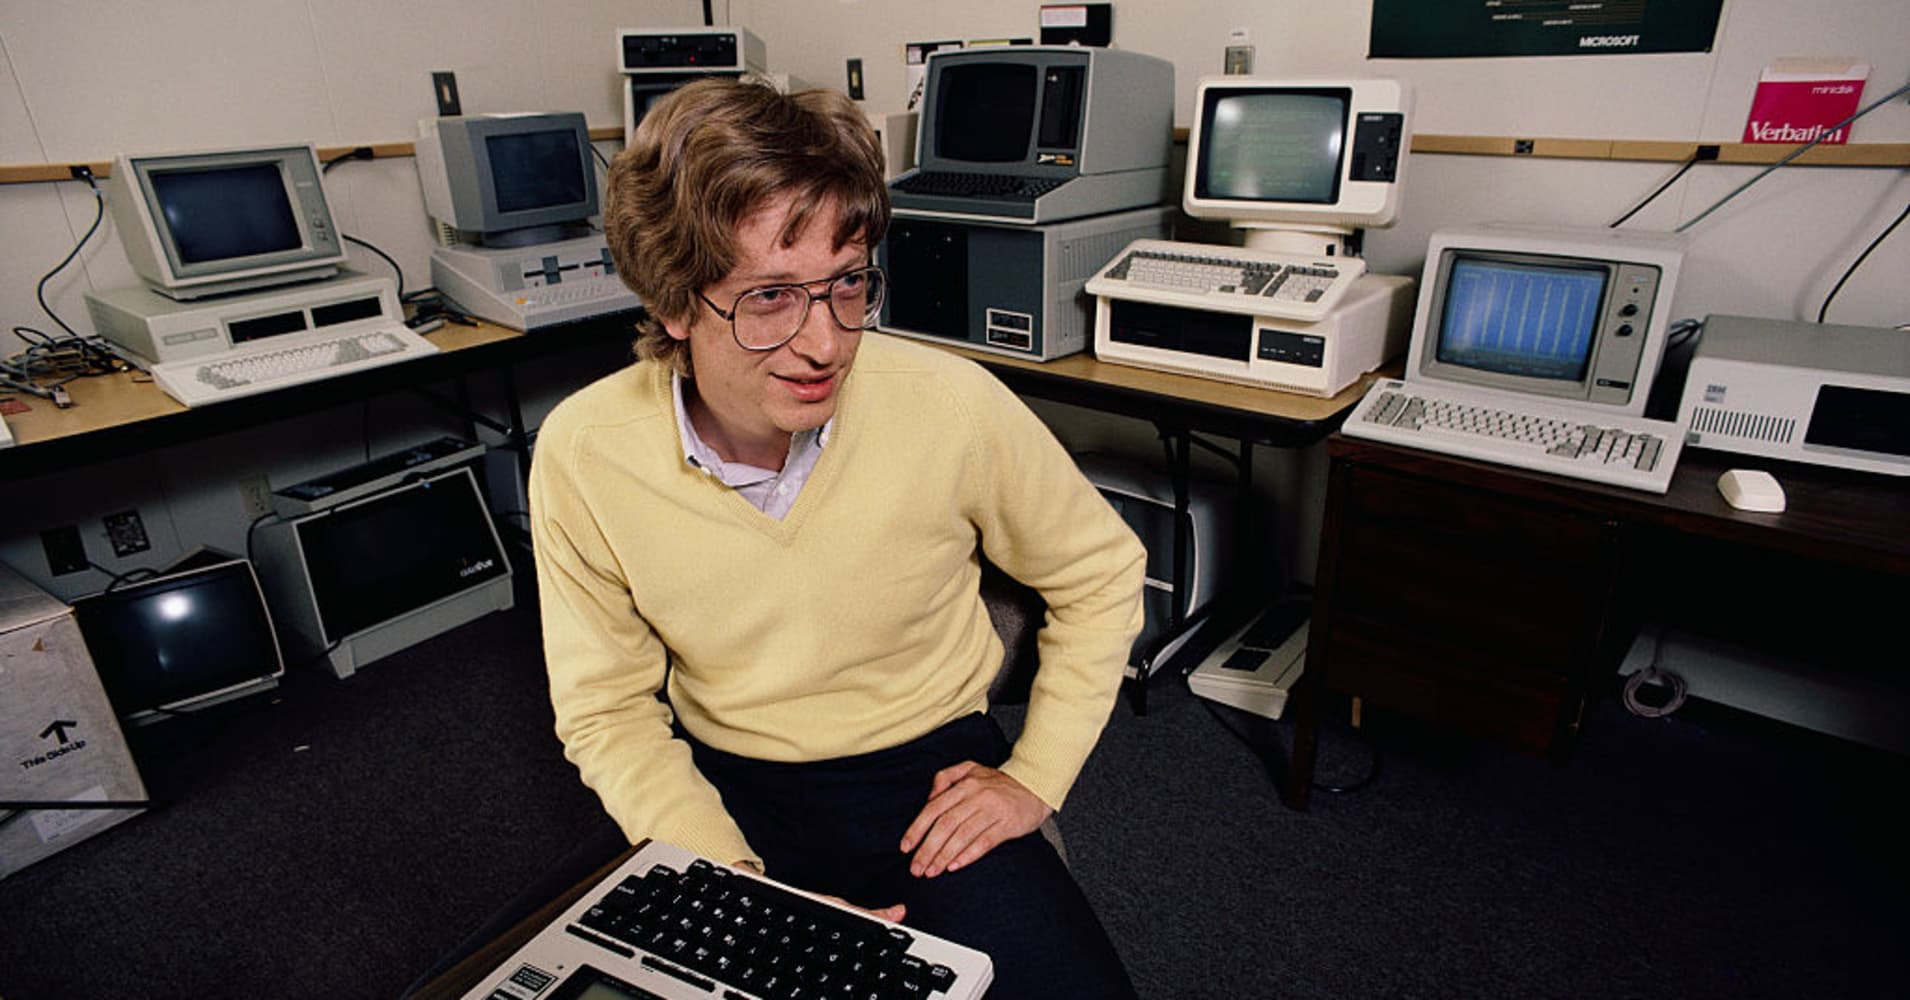 This is Bill Gates' resume from 1974—when he was making $15,000 a year